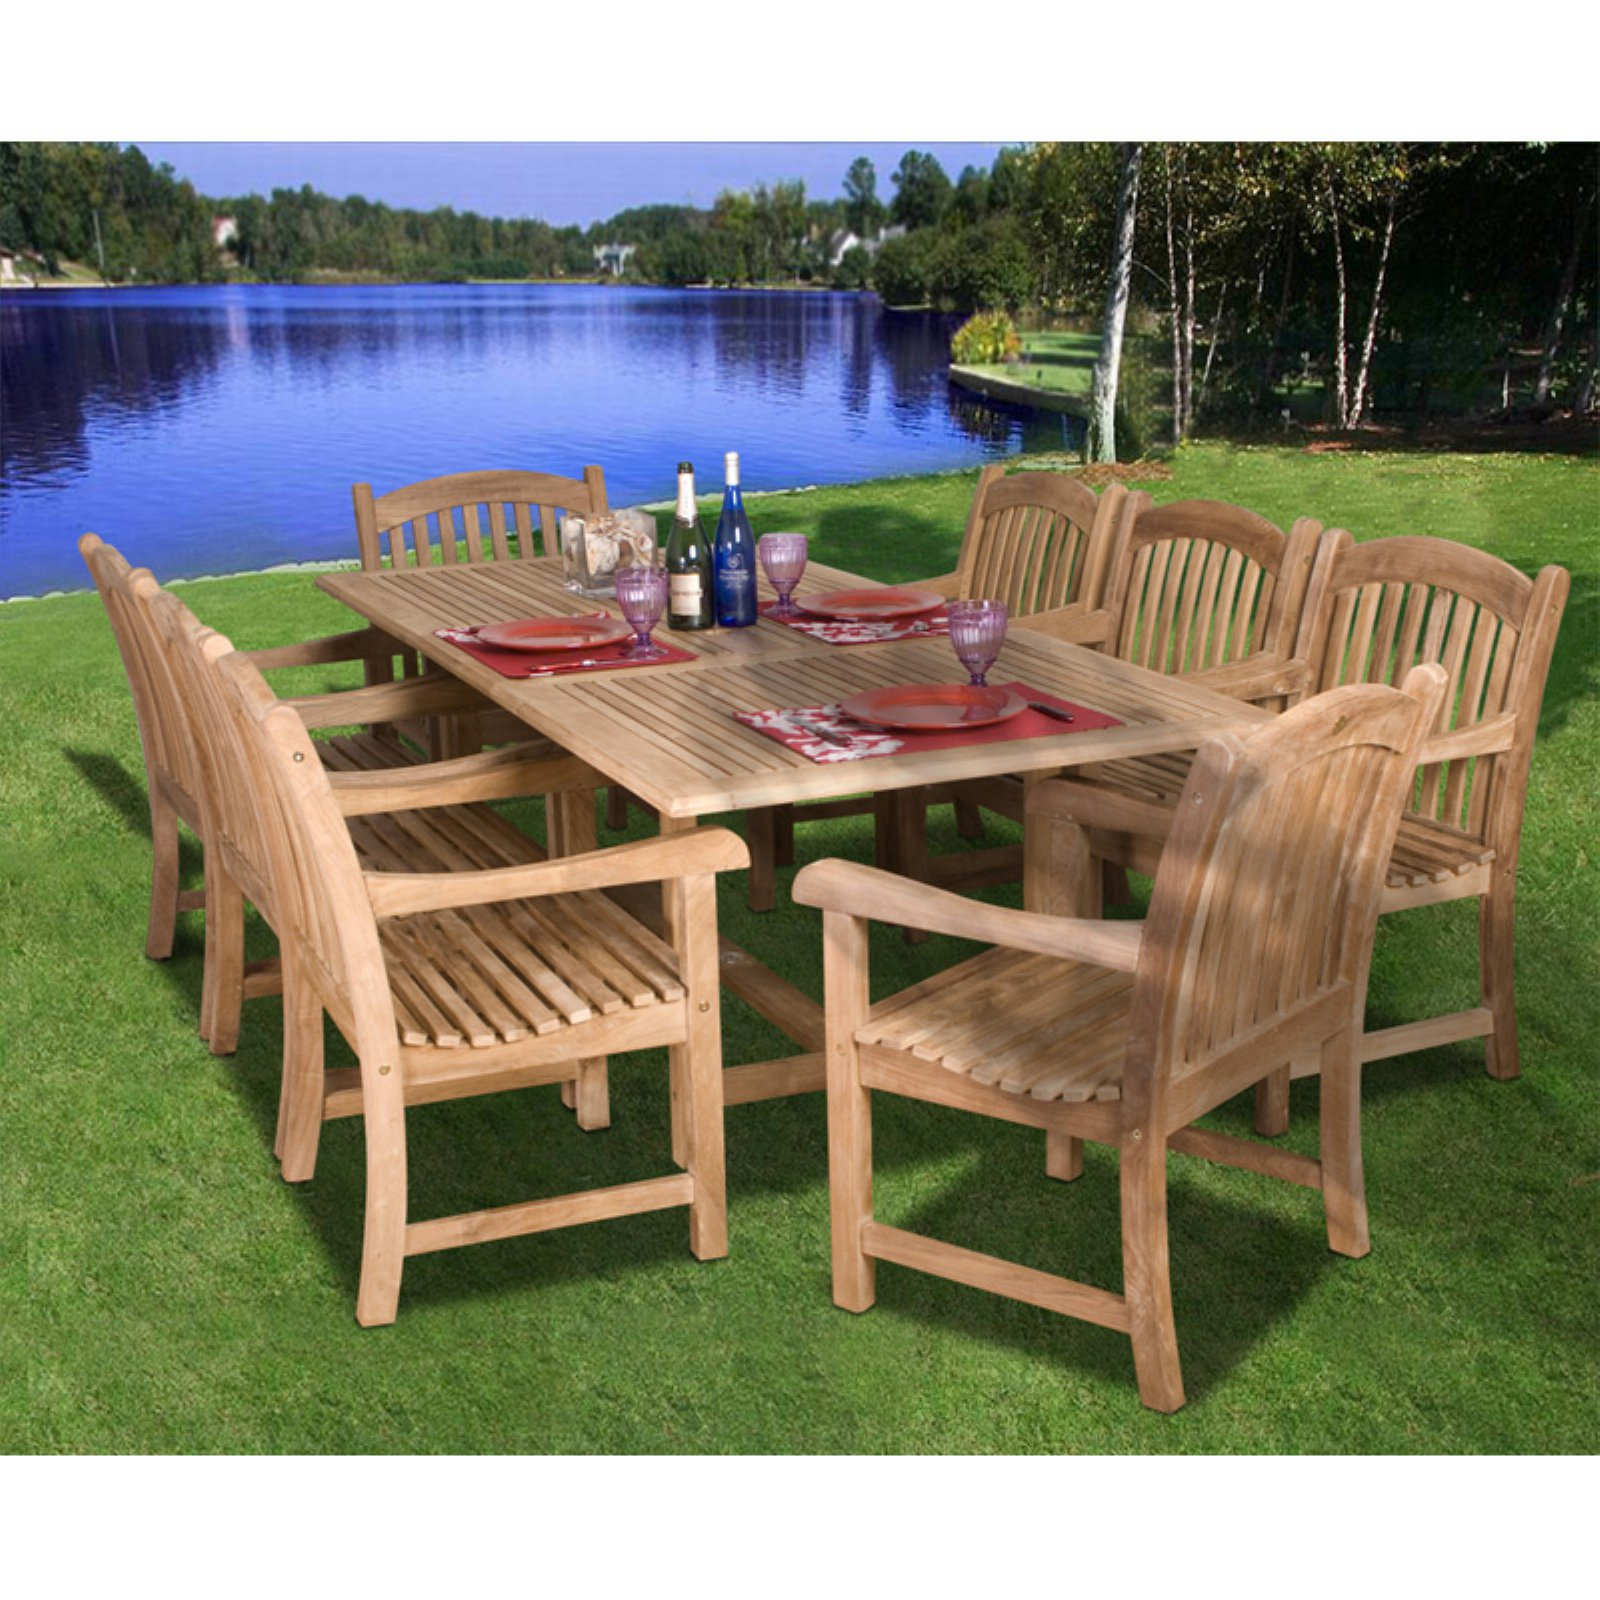 Amazonia Newcastle Teak Dining Set - Seats 8